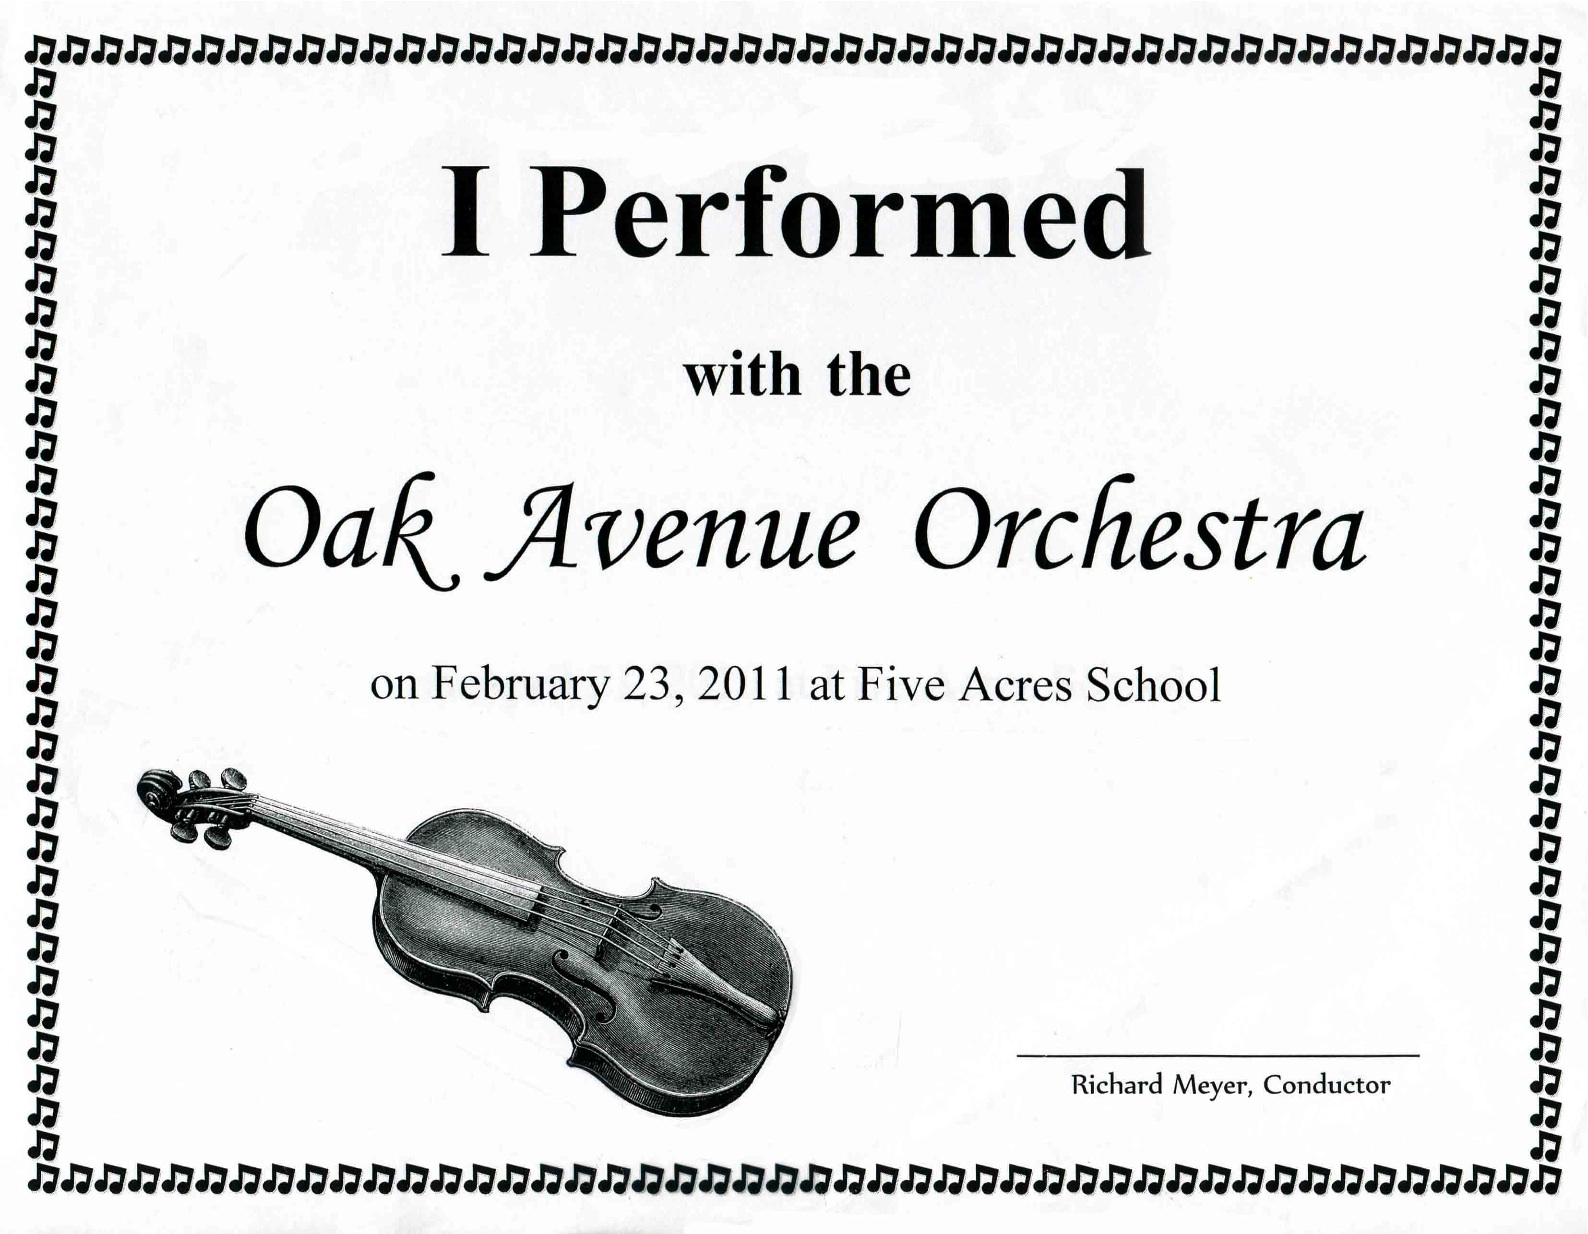 Music performance certificate template images certificate design music performance certificate template image collections music performance certificate template image collections music performance certificate template alramifo Image collections